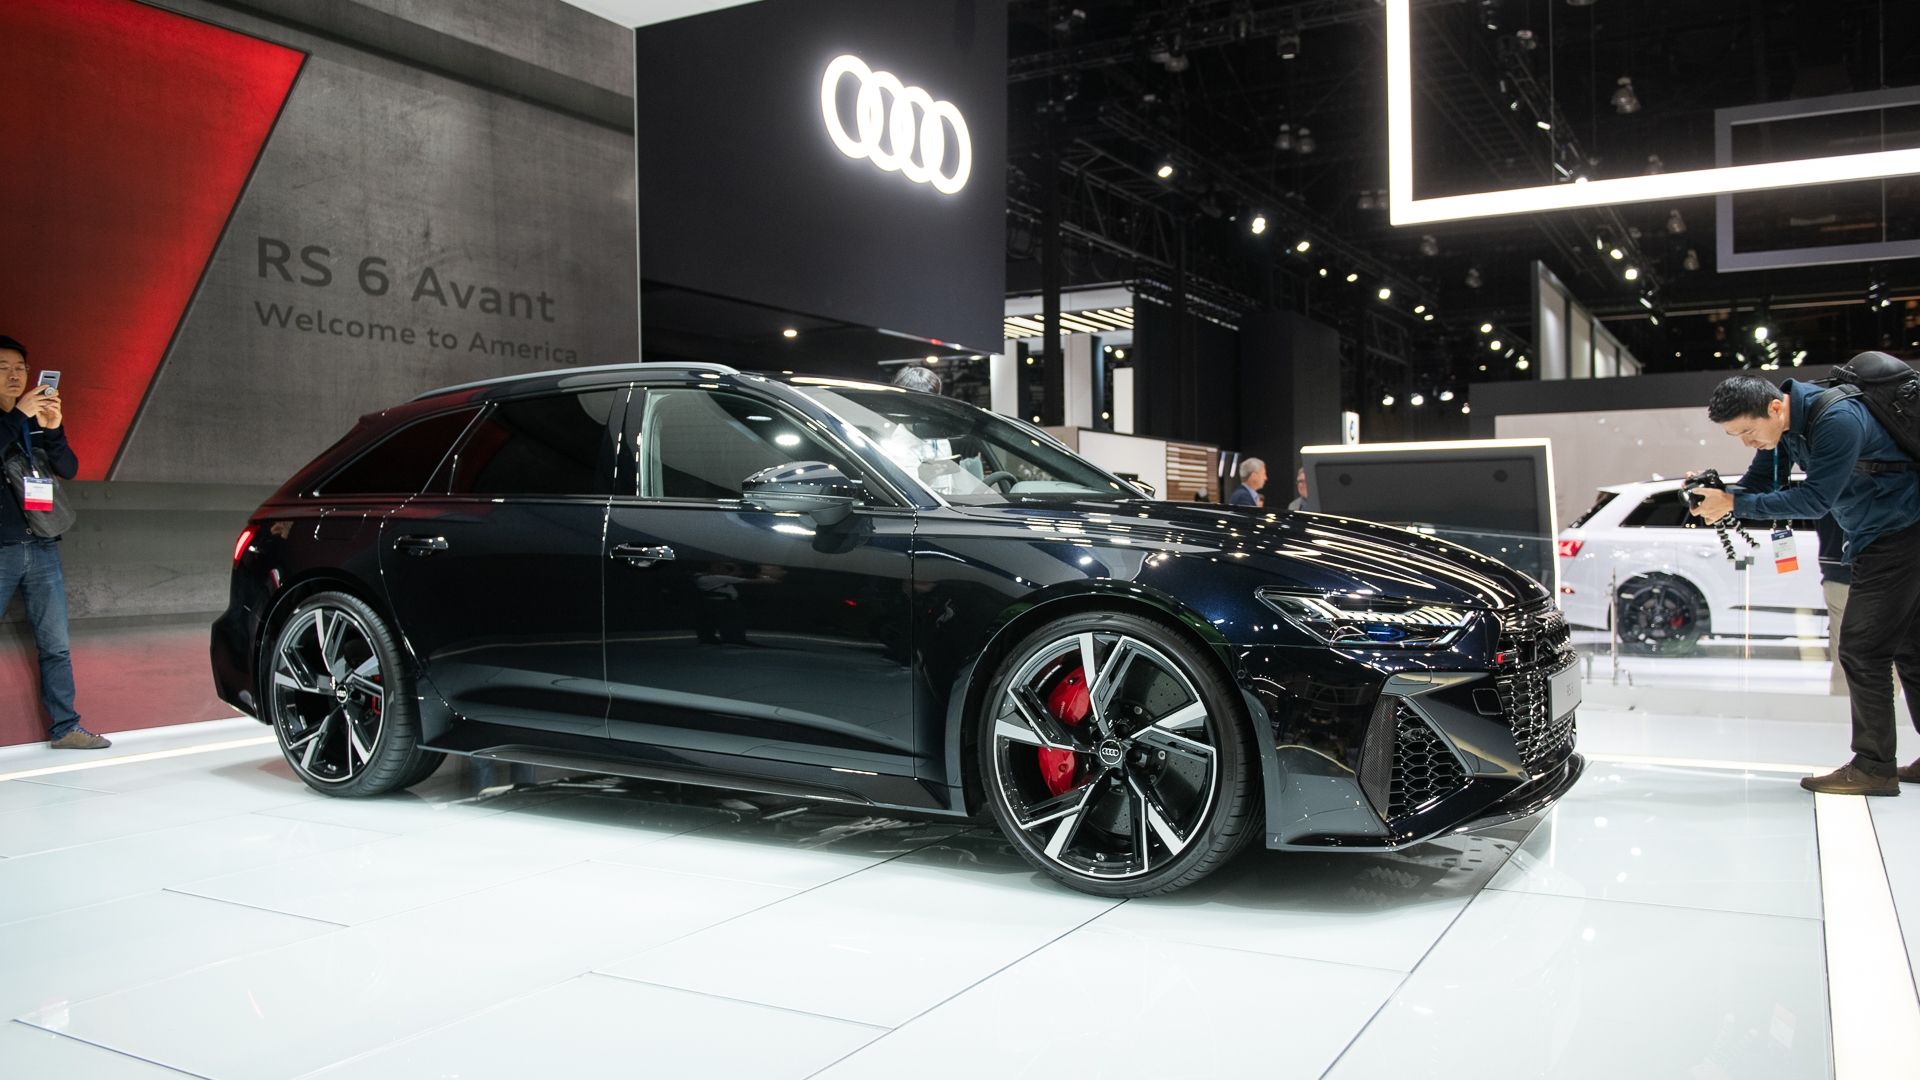 2020 Audi Rs 6 Avant Is An Angry Wagon Due On Sale In The ...